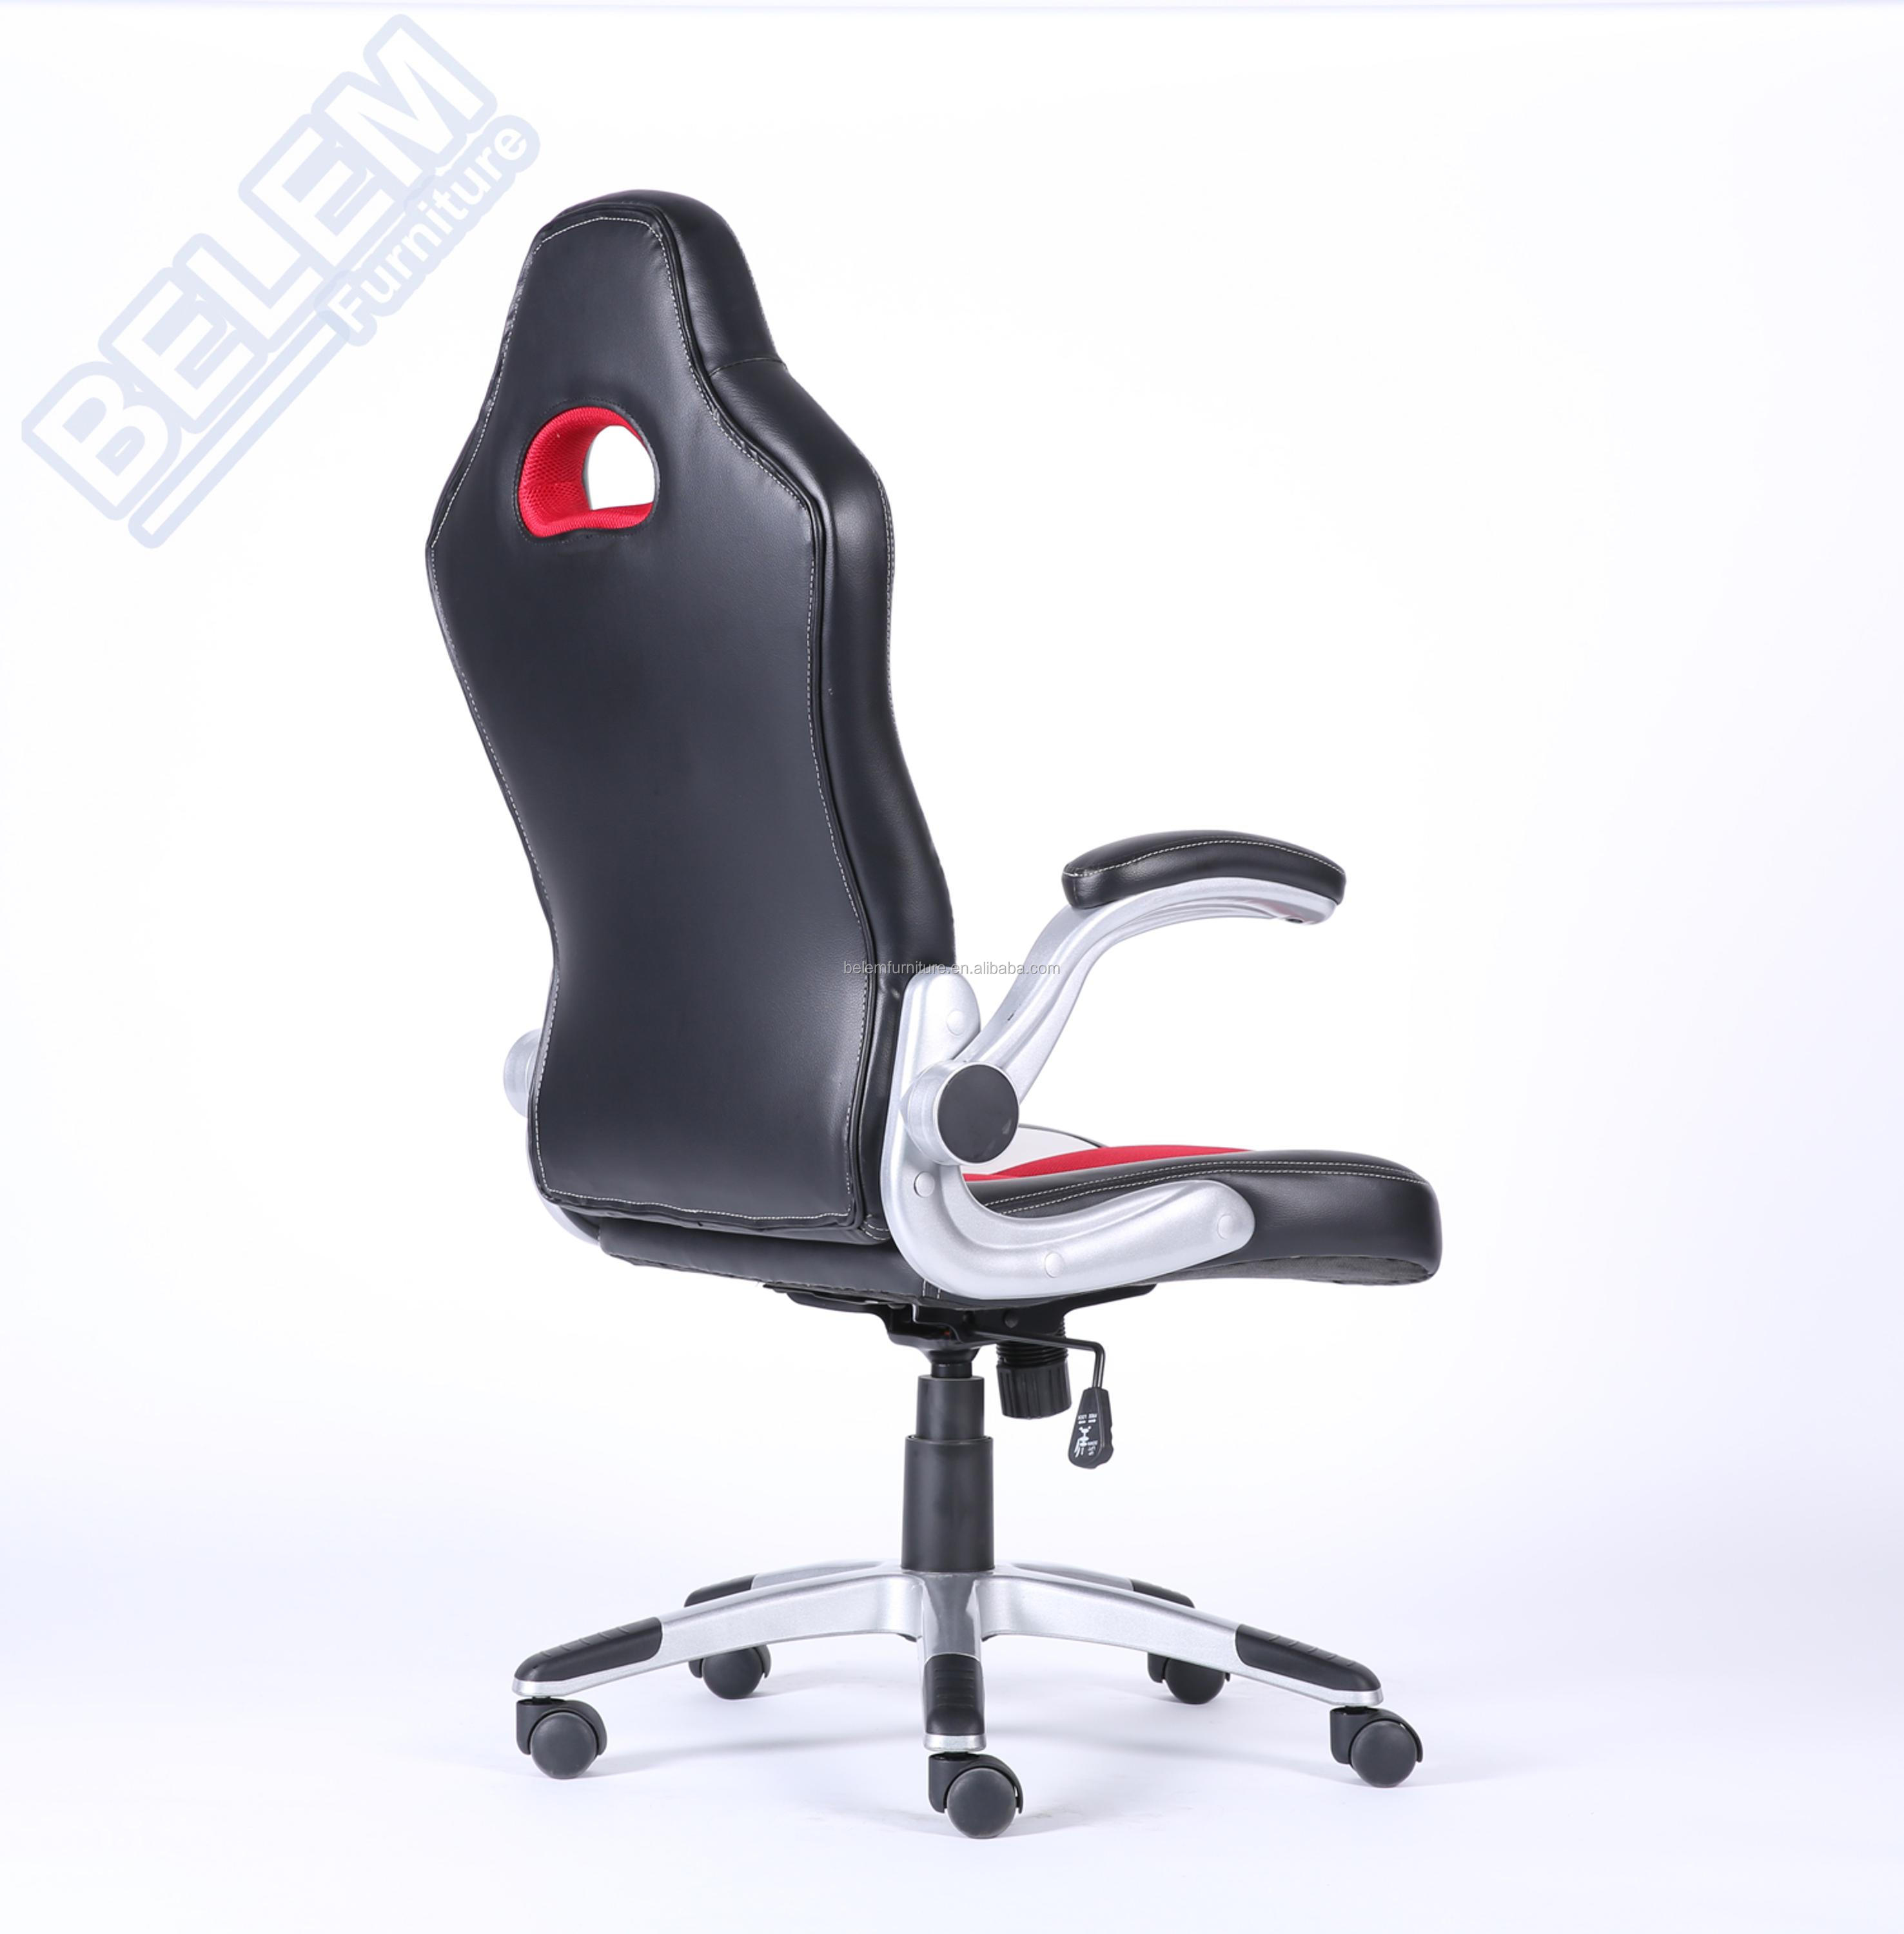 PU Leather Computer Office Chair Sport Racer Gaming chair with fashion design-Willianms-BL3304